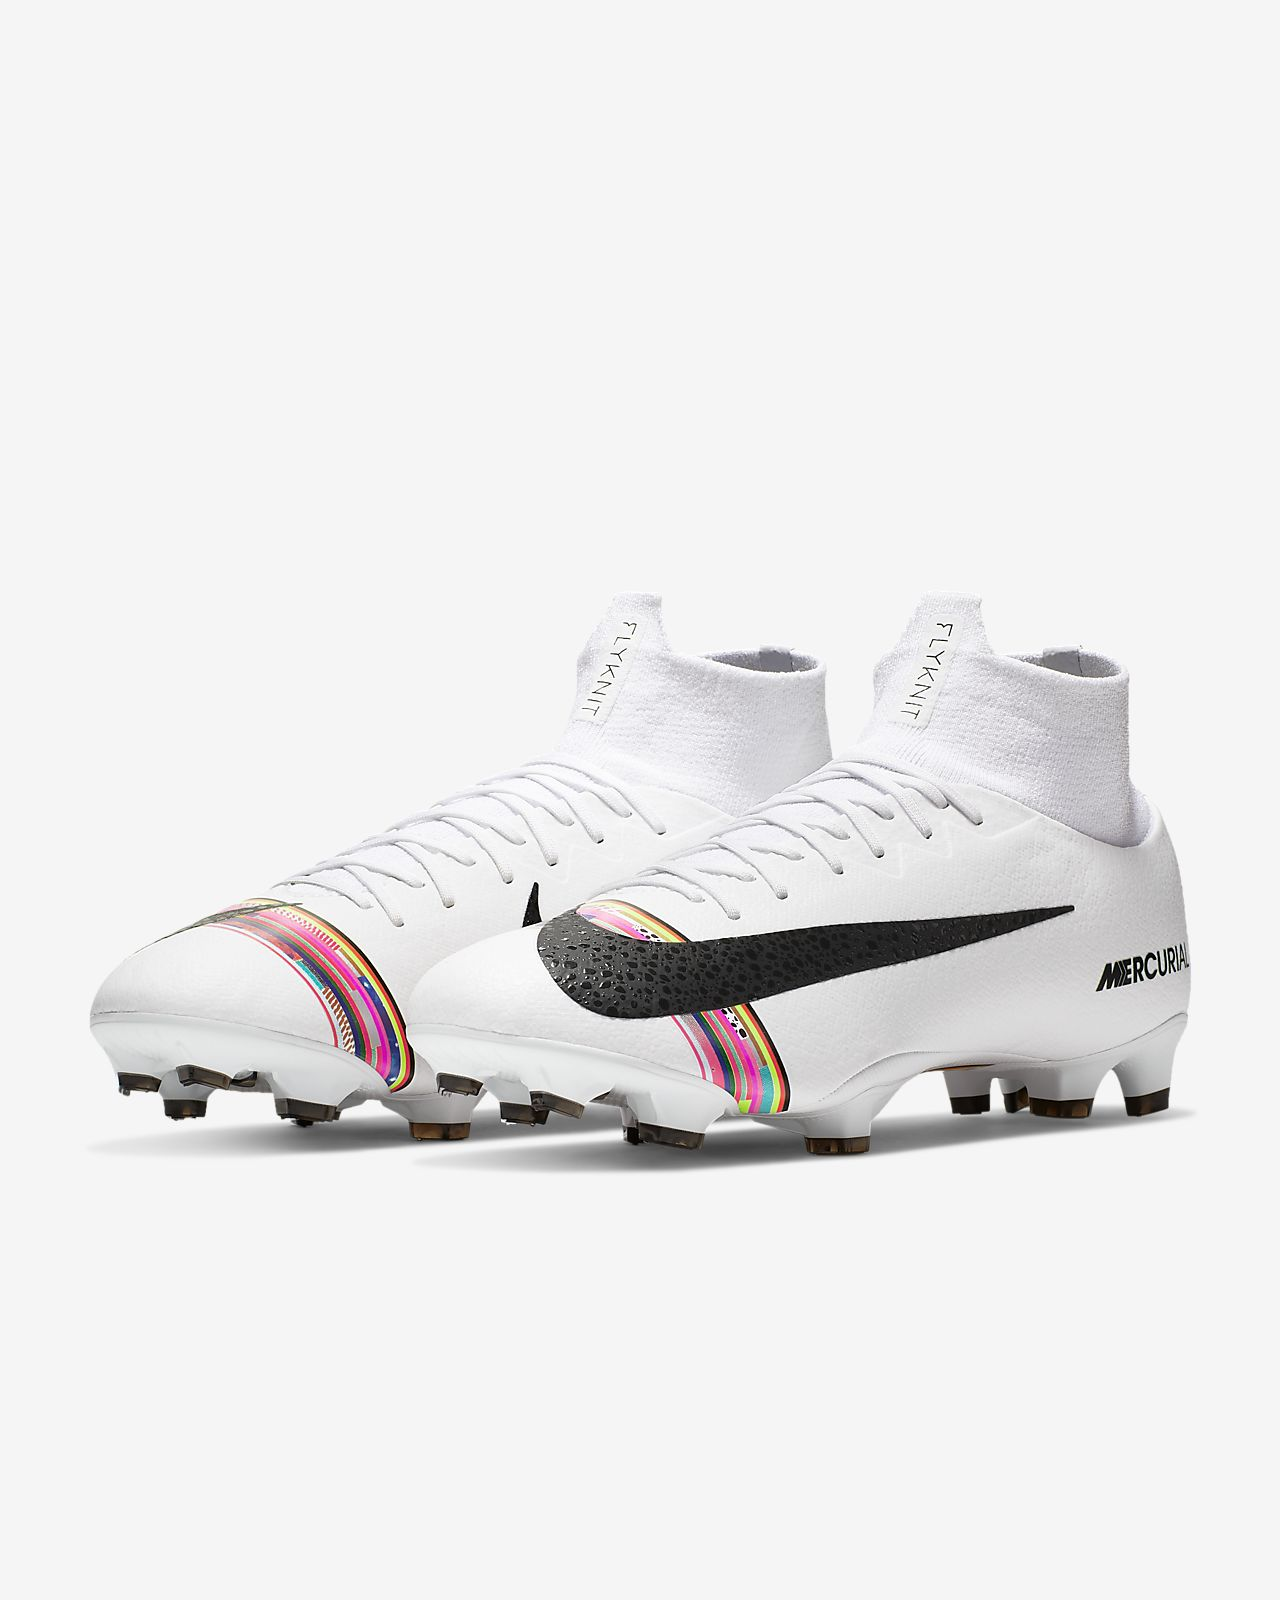 23be10c18 Nike Superfly 6 Pro LVL UP FG Firm-Ground Soccer Cleat. Nike.com